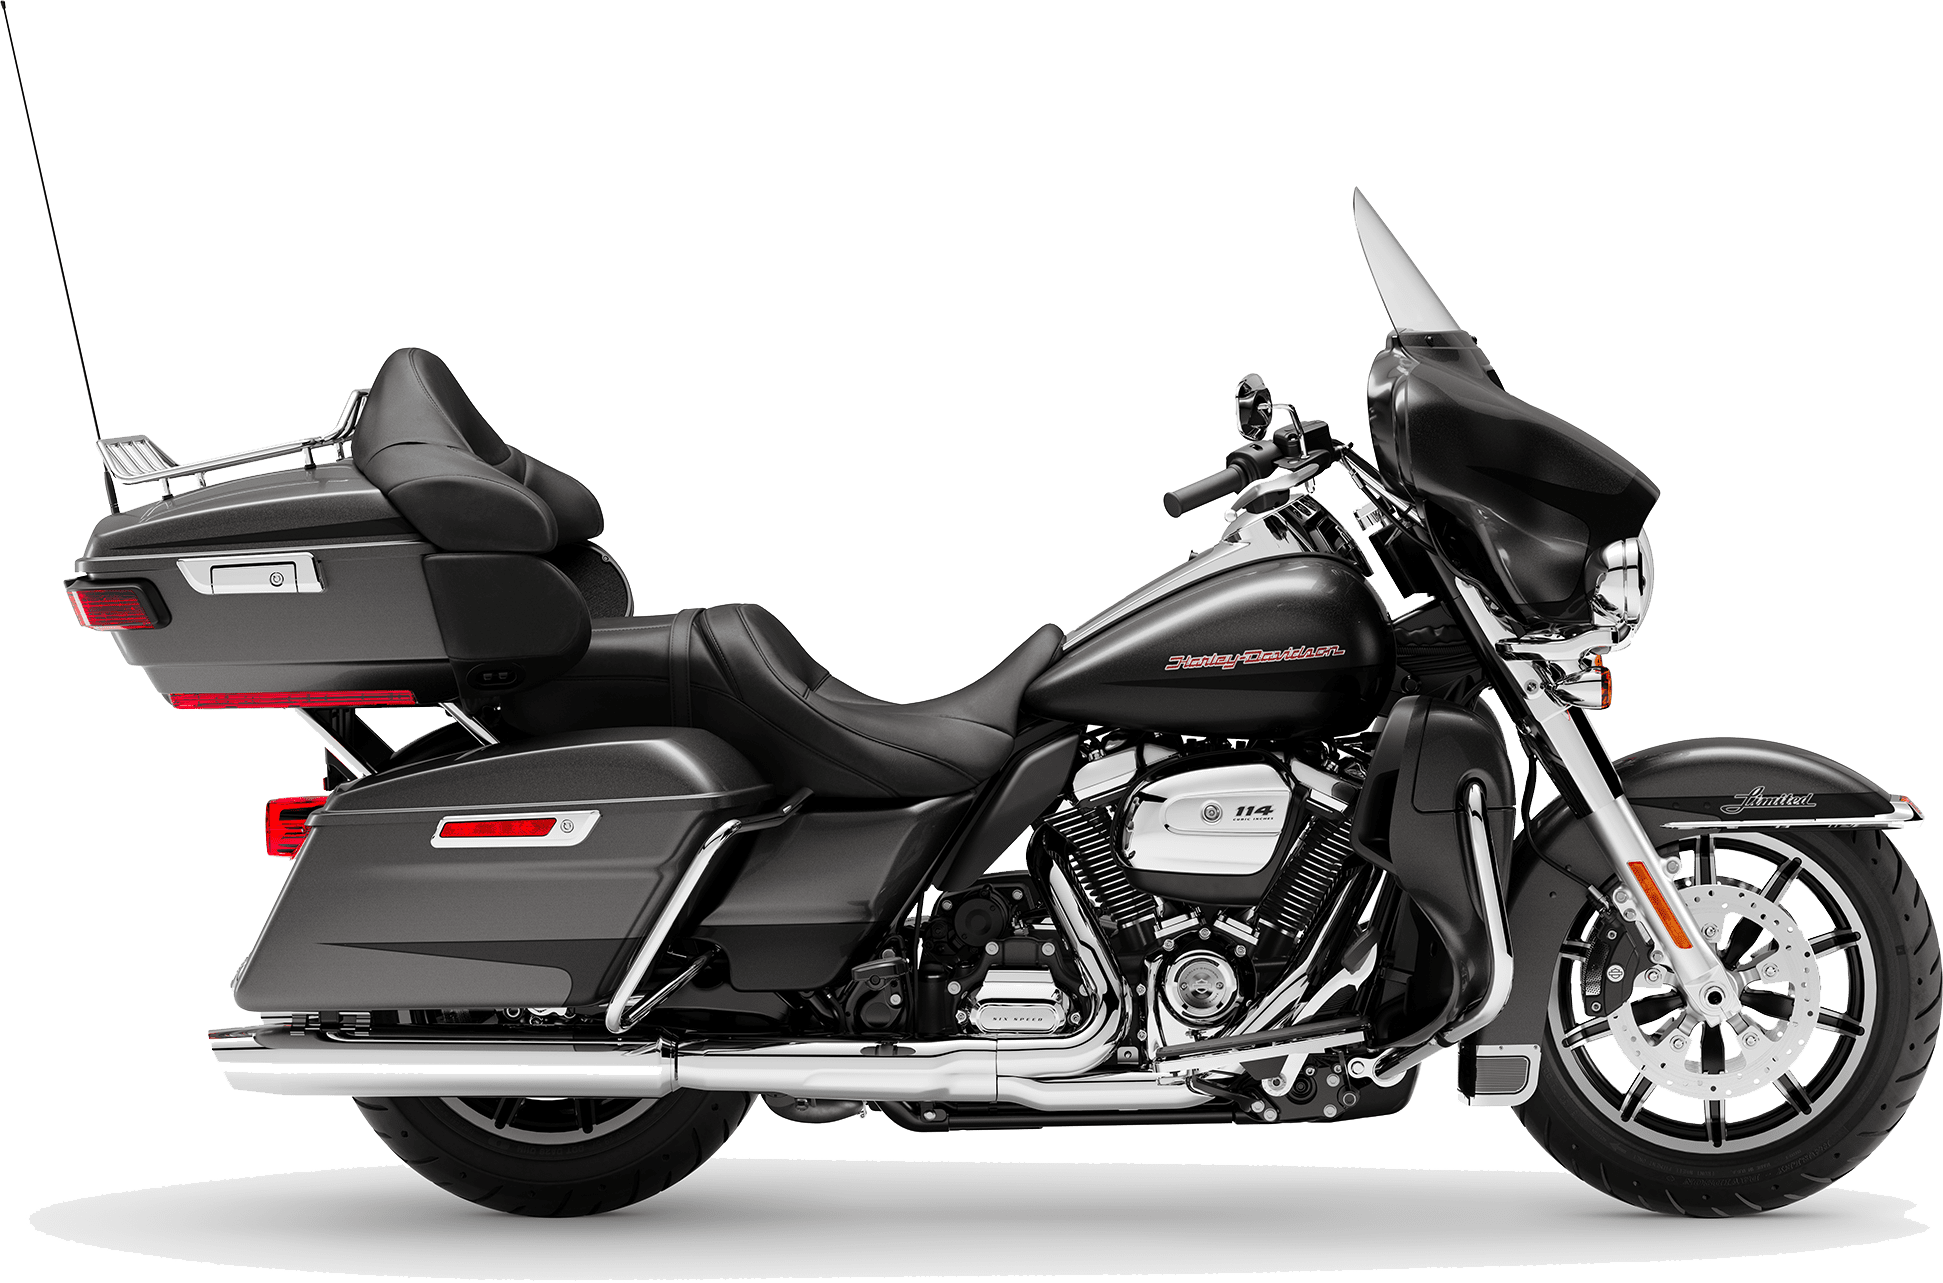 2019 Harley-Davidson H-D Touring Road Ultra Limited Low Silver Flux Black Fuse